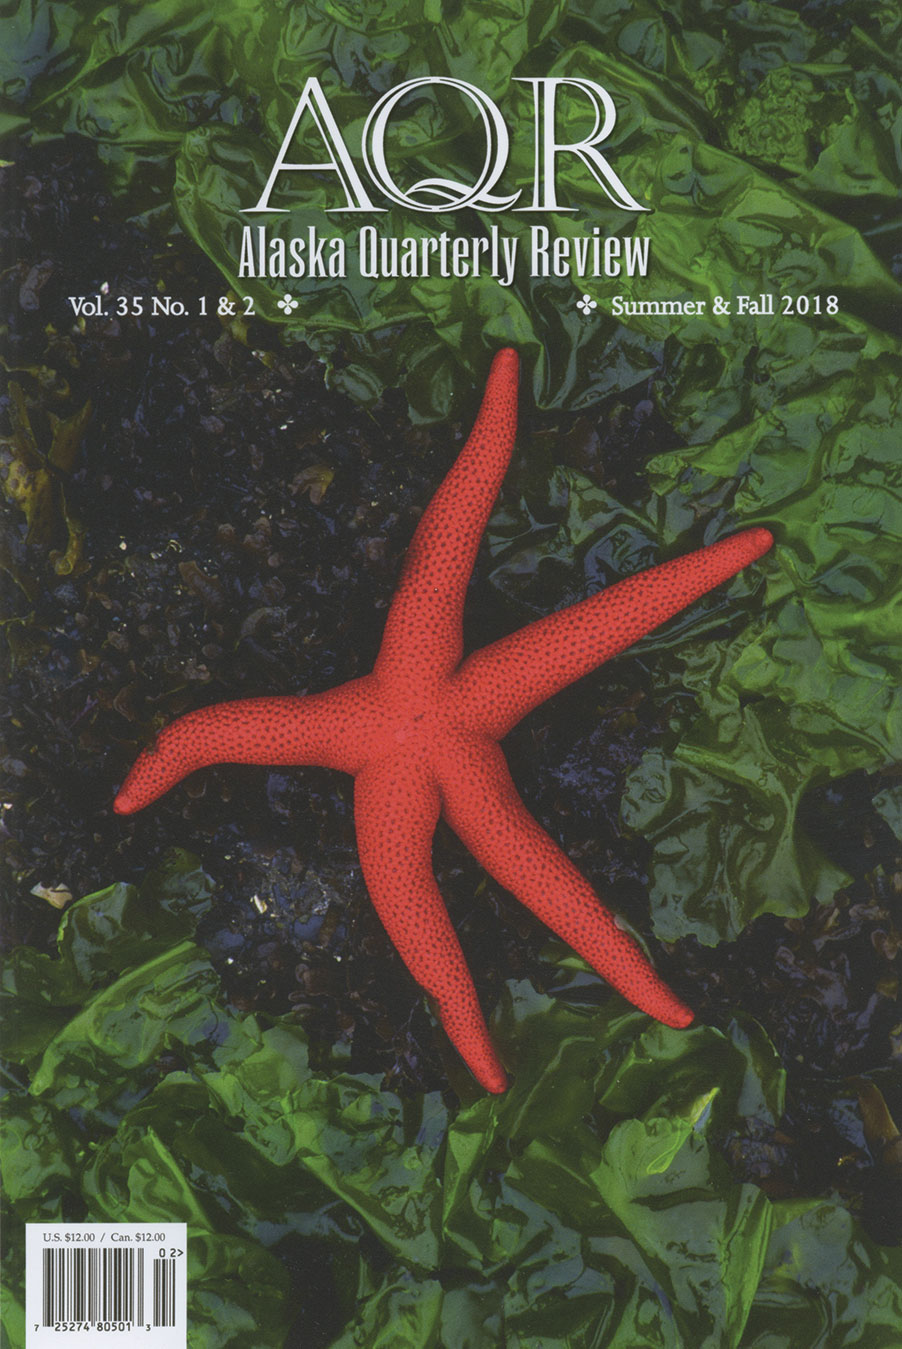 Alaska Quarterly Review, Volume 35